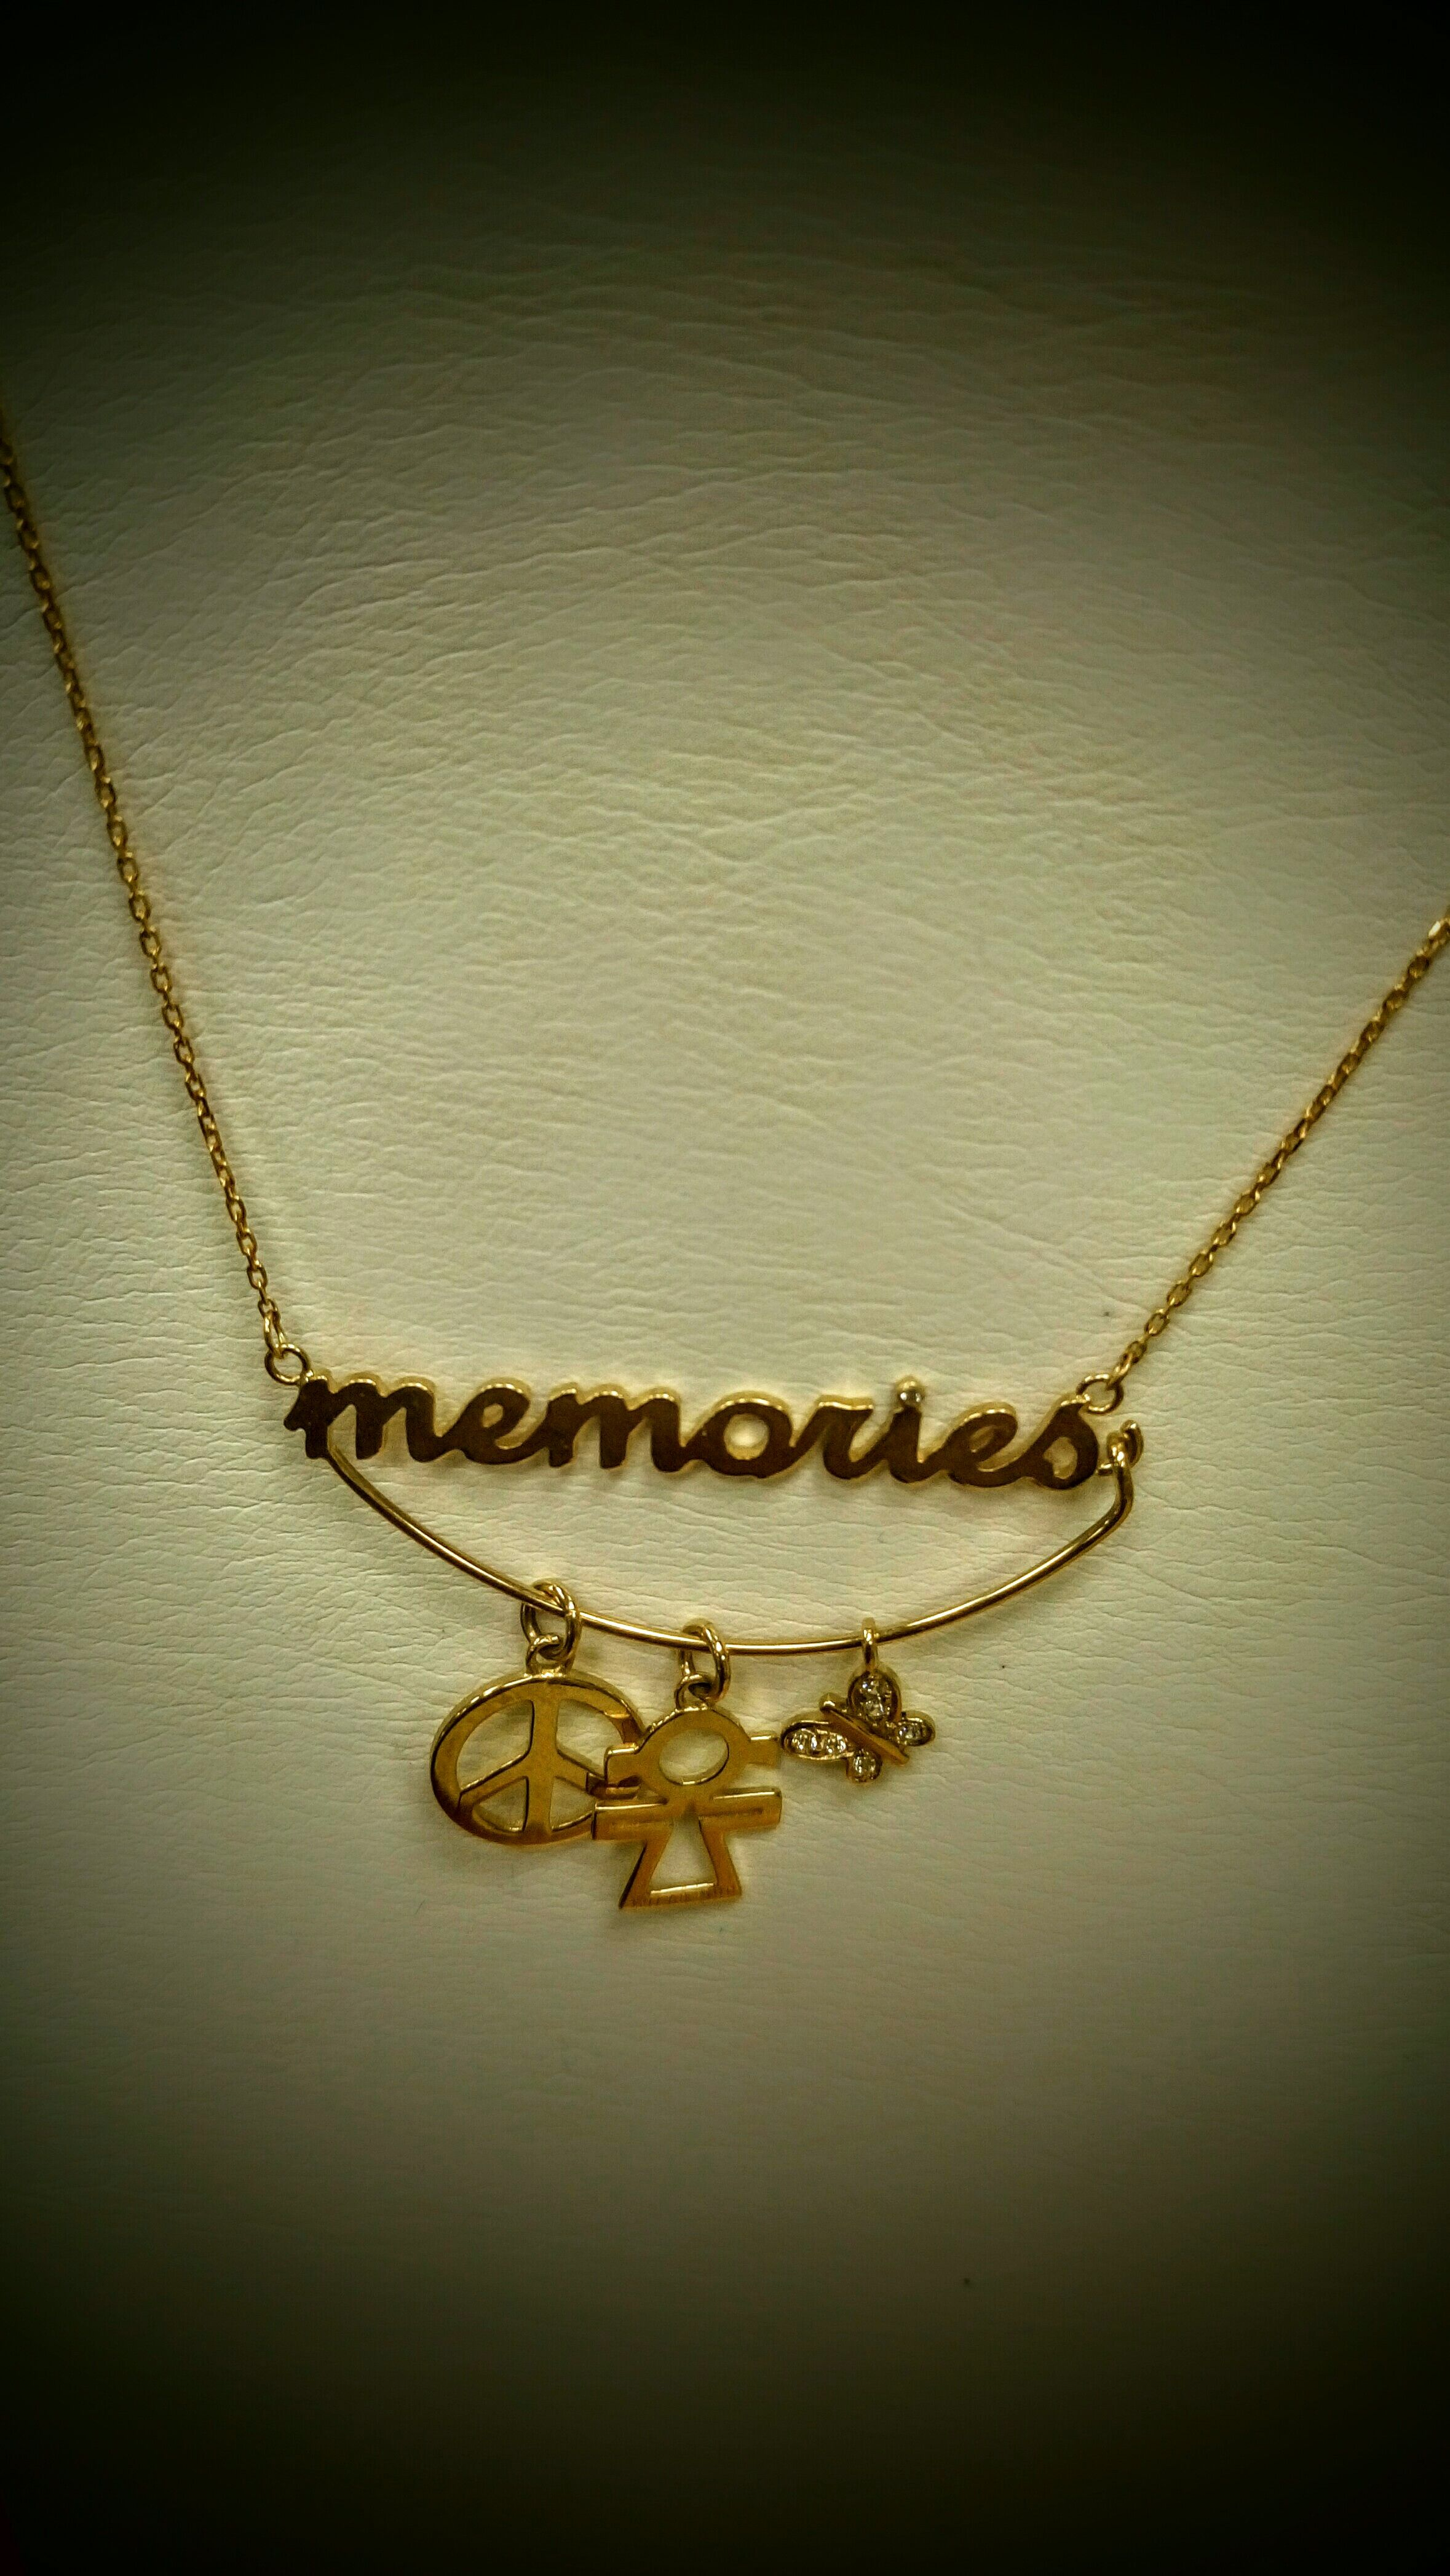 save promo alzheimer necklace hope s mn alzheimers products trade share memories